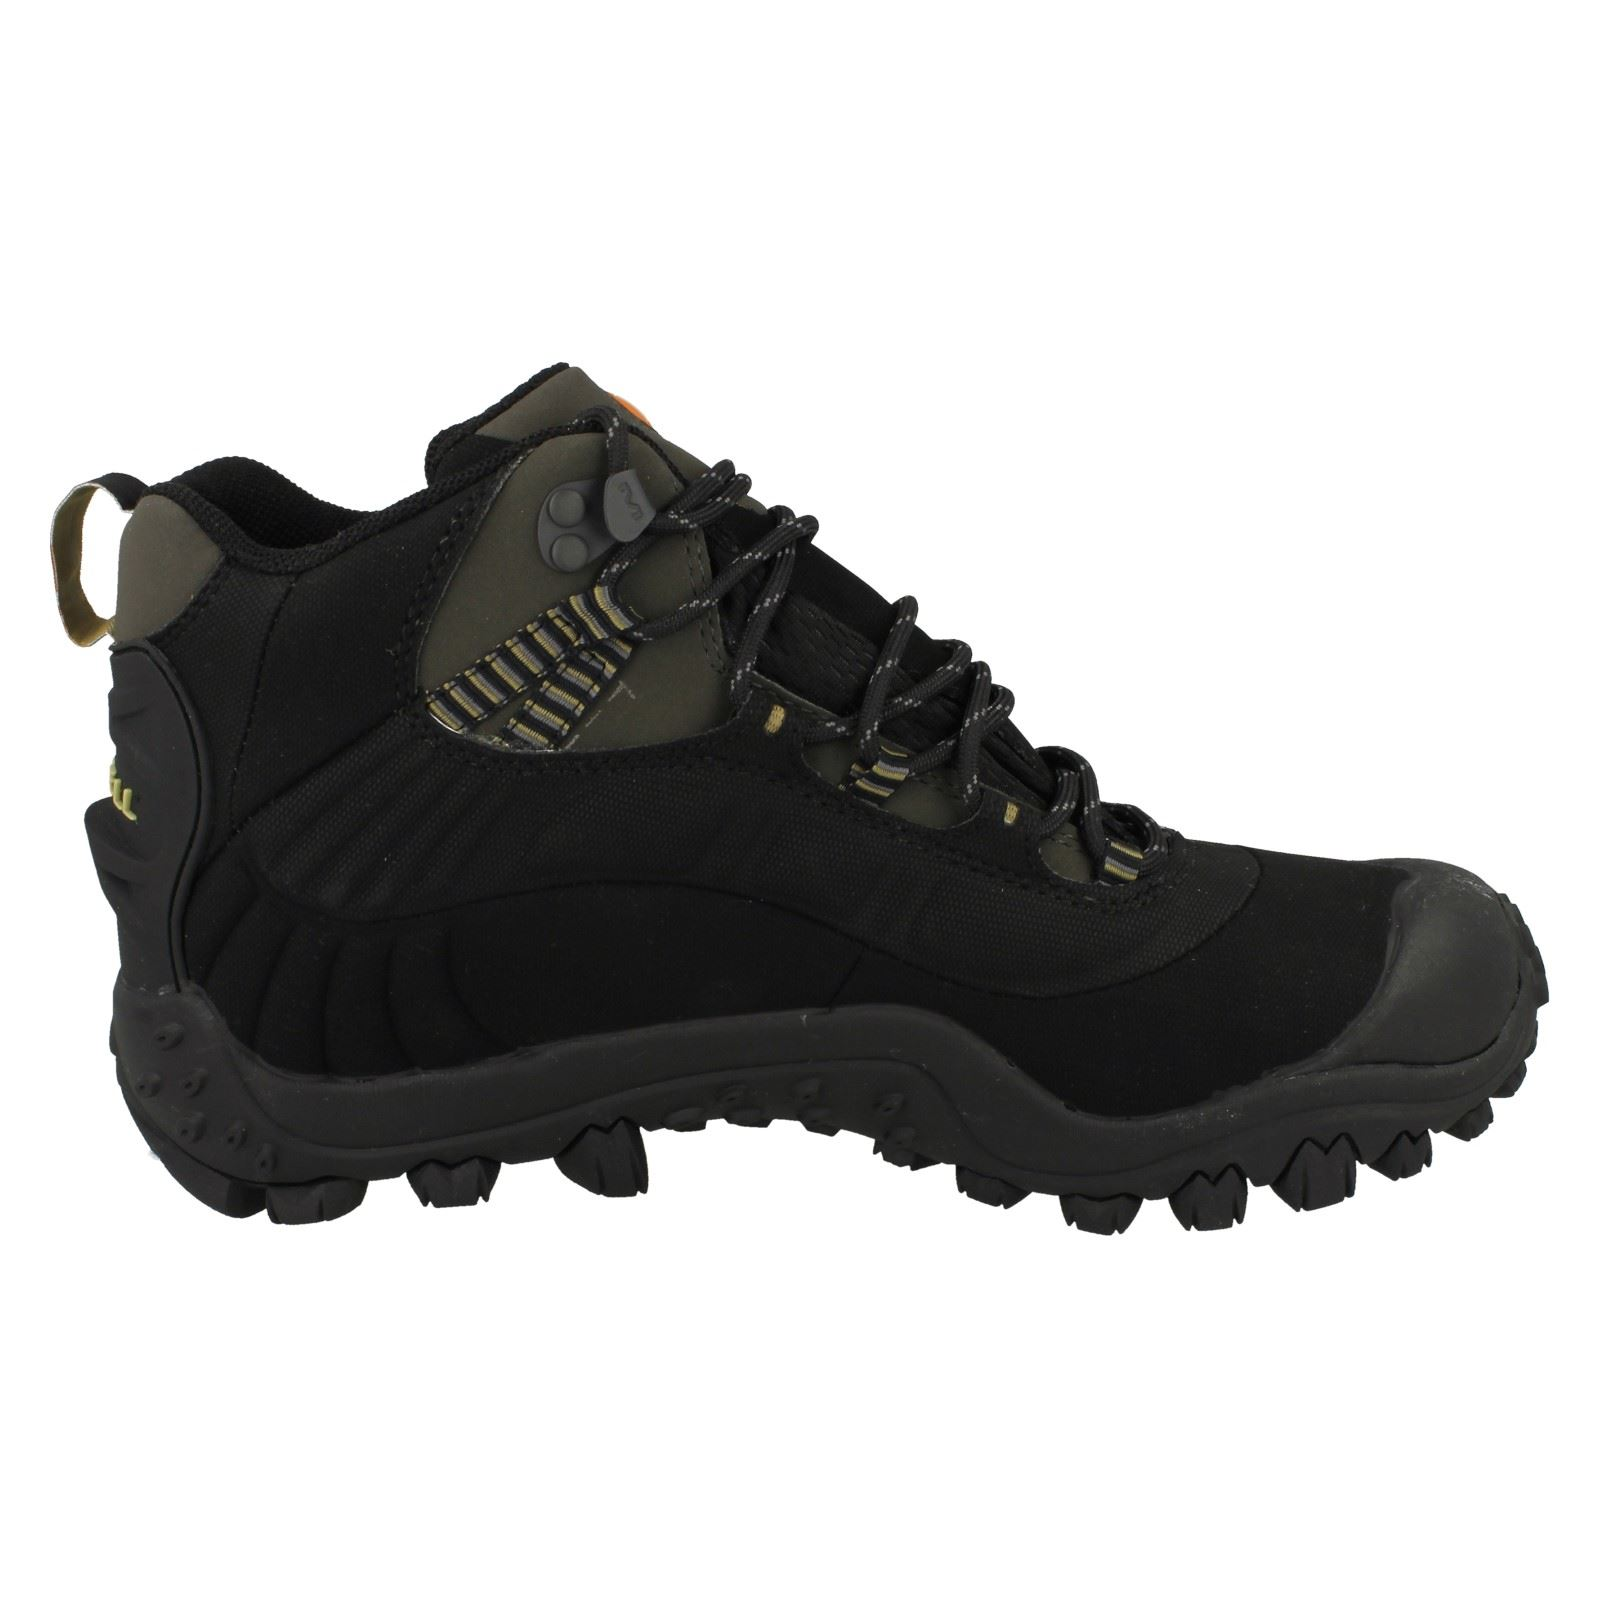 6c41449d31e Details about Mens Merrell Casual Waterproof Lace Up Walking Boots -  Chameleon